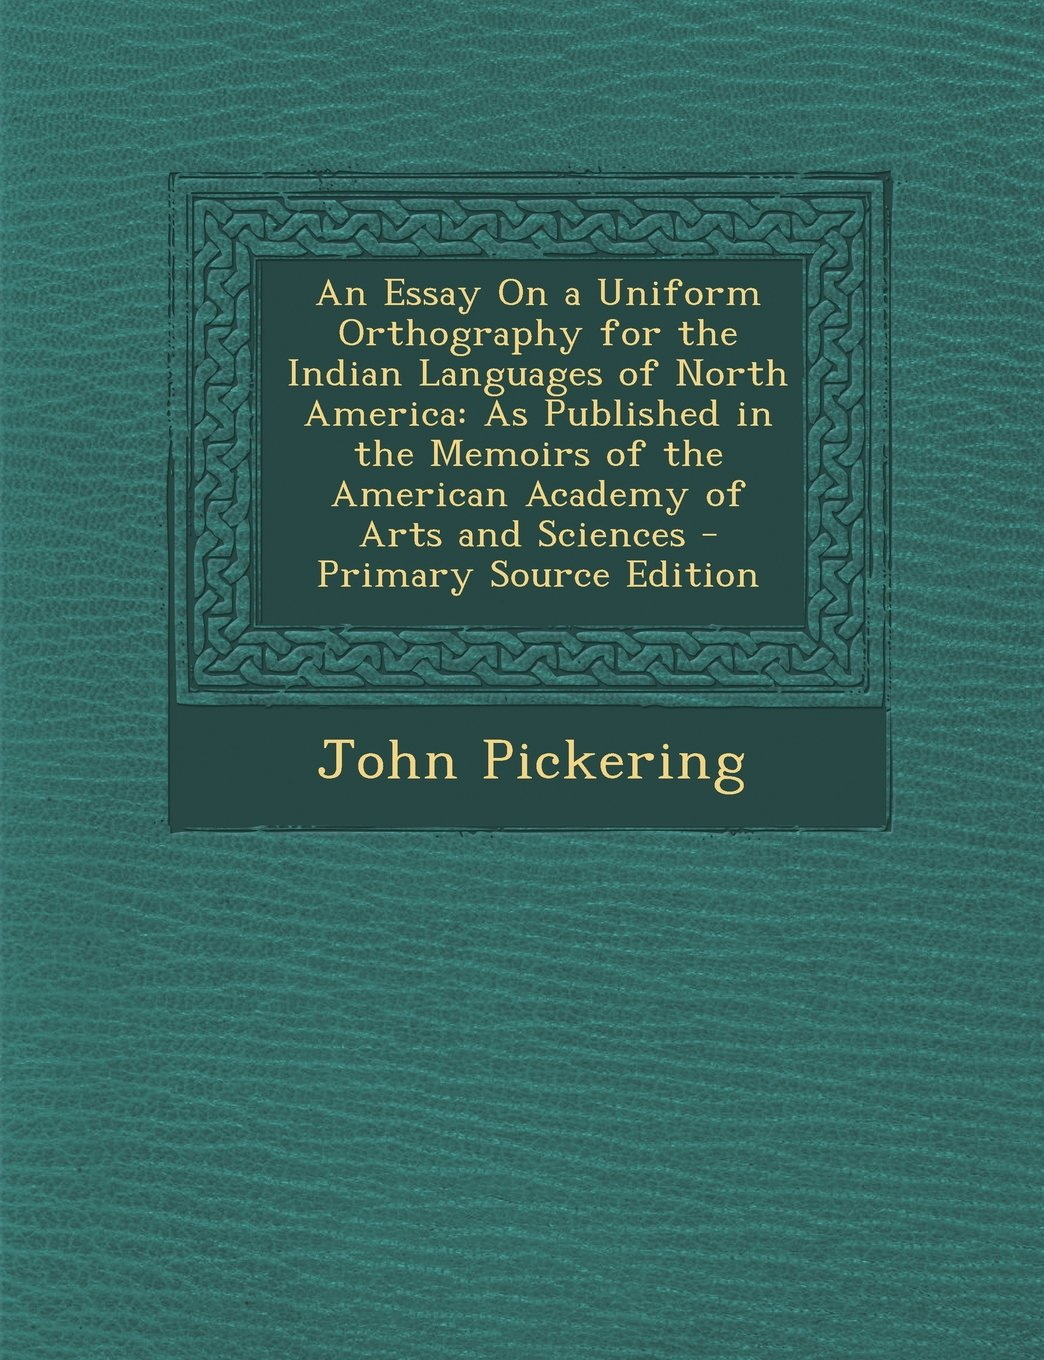 Download An  Essay on a Uniform Orthography for the Indian Languages of North America: As Published in the Memoirs of the American Academy of Arts and Sciences pdf